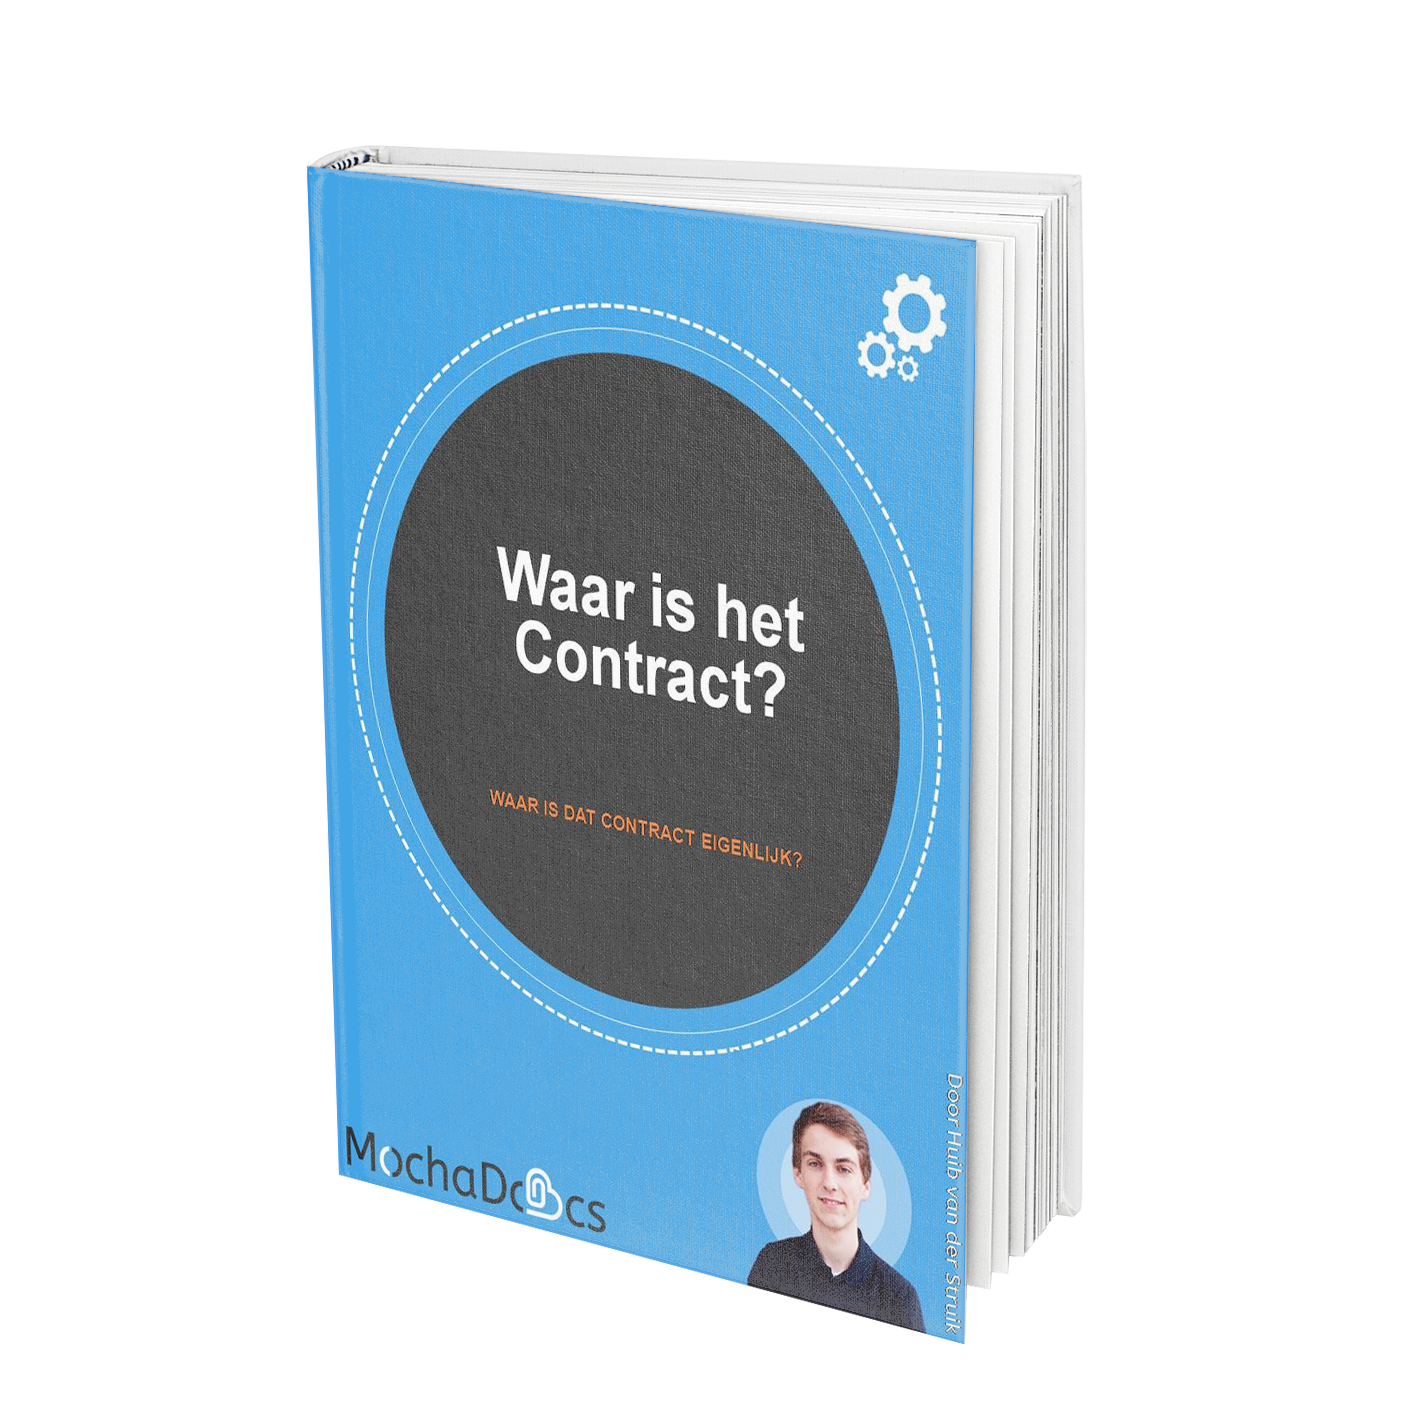 Waar is het Contract?